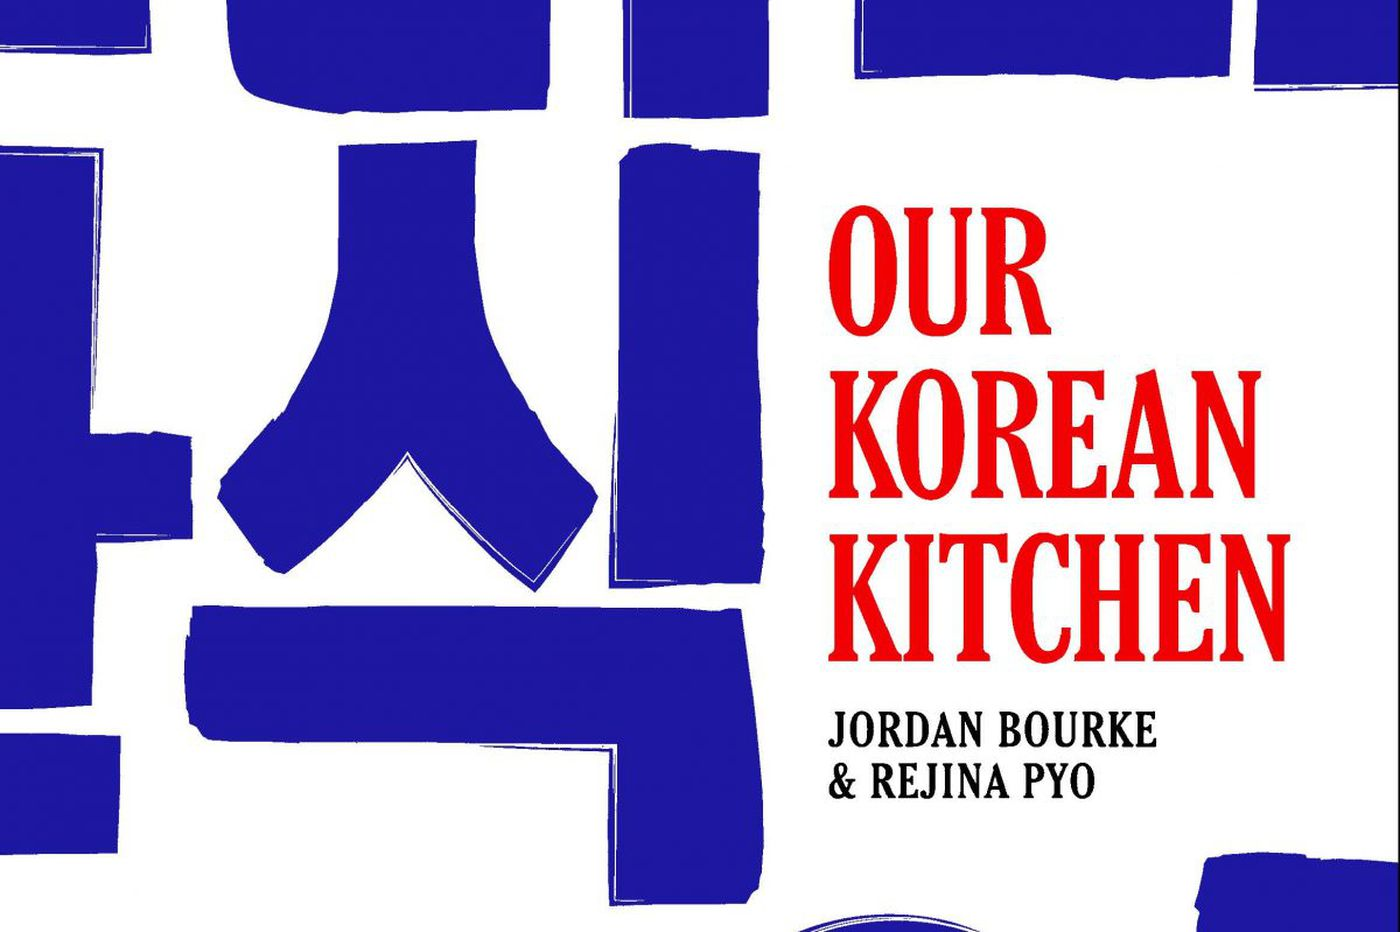 Cook the cuisine of the Olympics with 'Our Korean Kitchen'